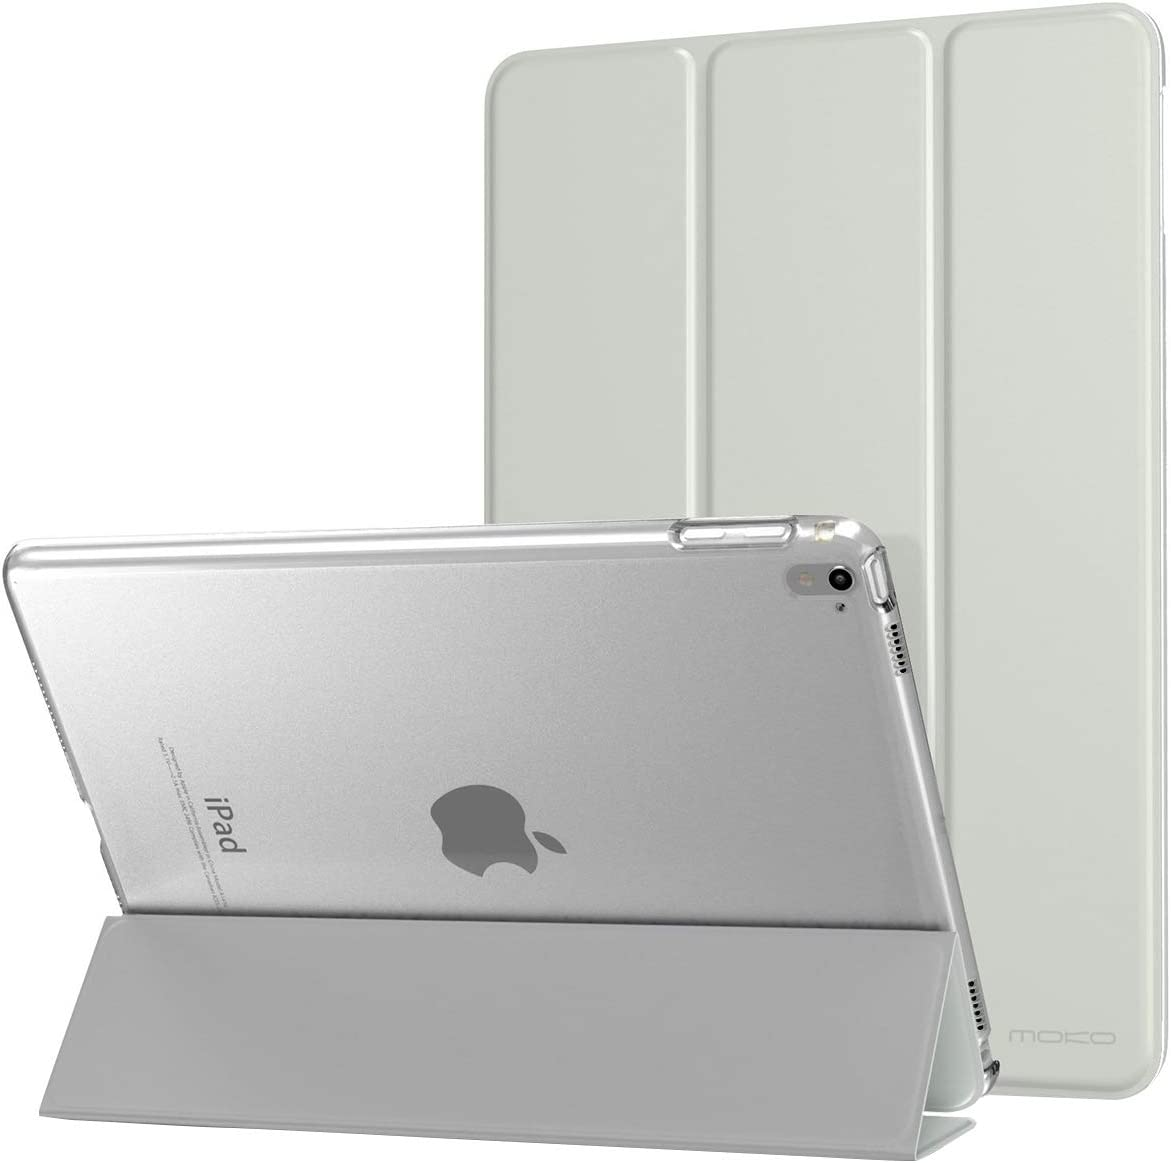 MoKo Case Fit iPad Pro 9.7 - Slim Lightweight Smart Shell Stand Cover with Translucent Frosted Back Protector Fit iPad Pro 9.7 Inch 2016 Release Tablet, Silver (with Auto Wake / Sleep)